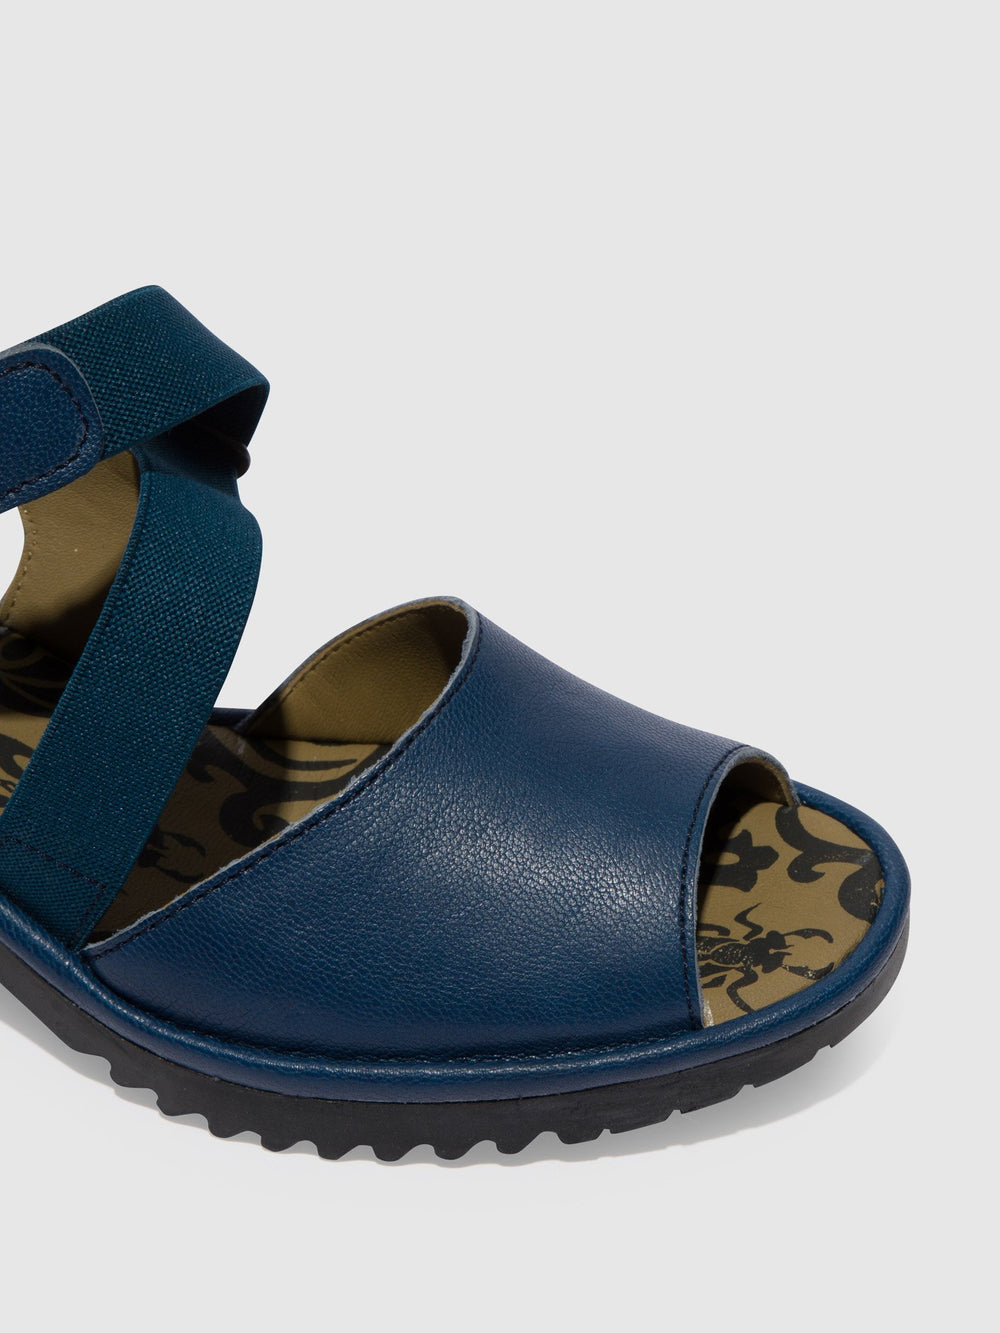 Velcro Sandals WUNI135FLY BLUE (BLACK SOLE)